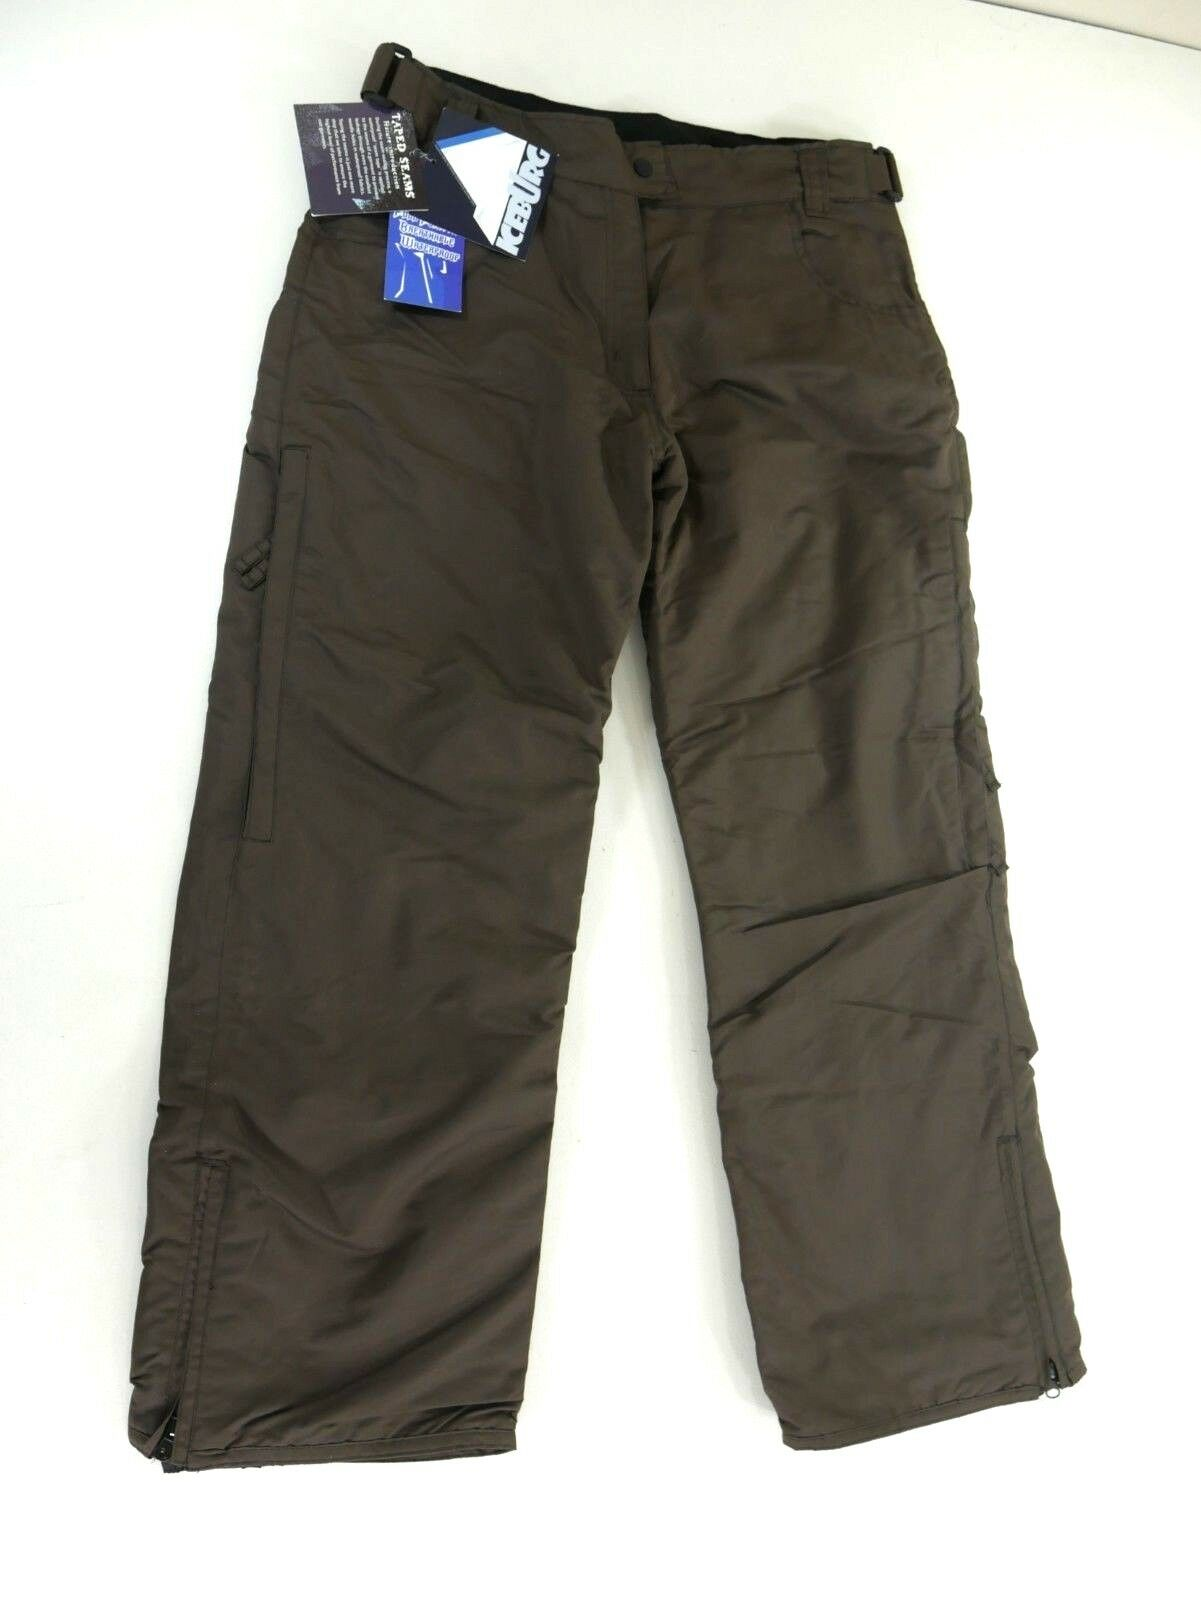 Iceburg Womens Brown Ski Snowboard Technical Pants Jean Trouser Style Size Large